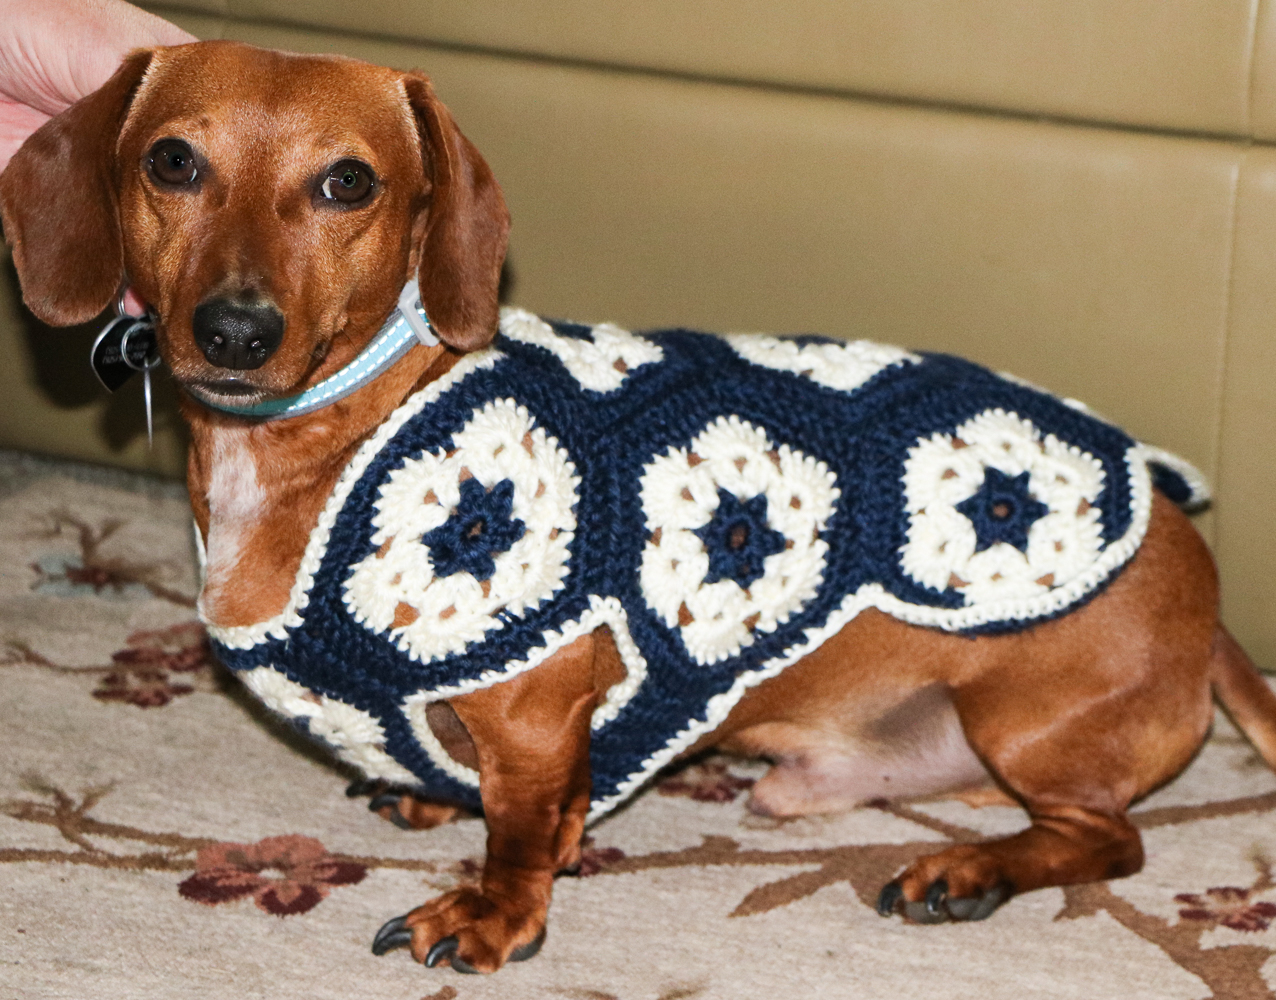 Dachshund Jumper Knitting Pattern 25 Beautiful Crochet Dog Sweater Pattern The Funky Stitch